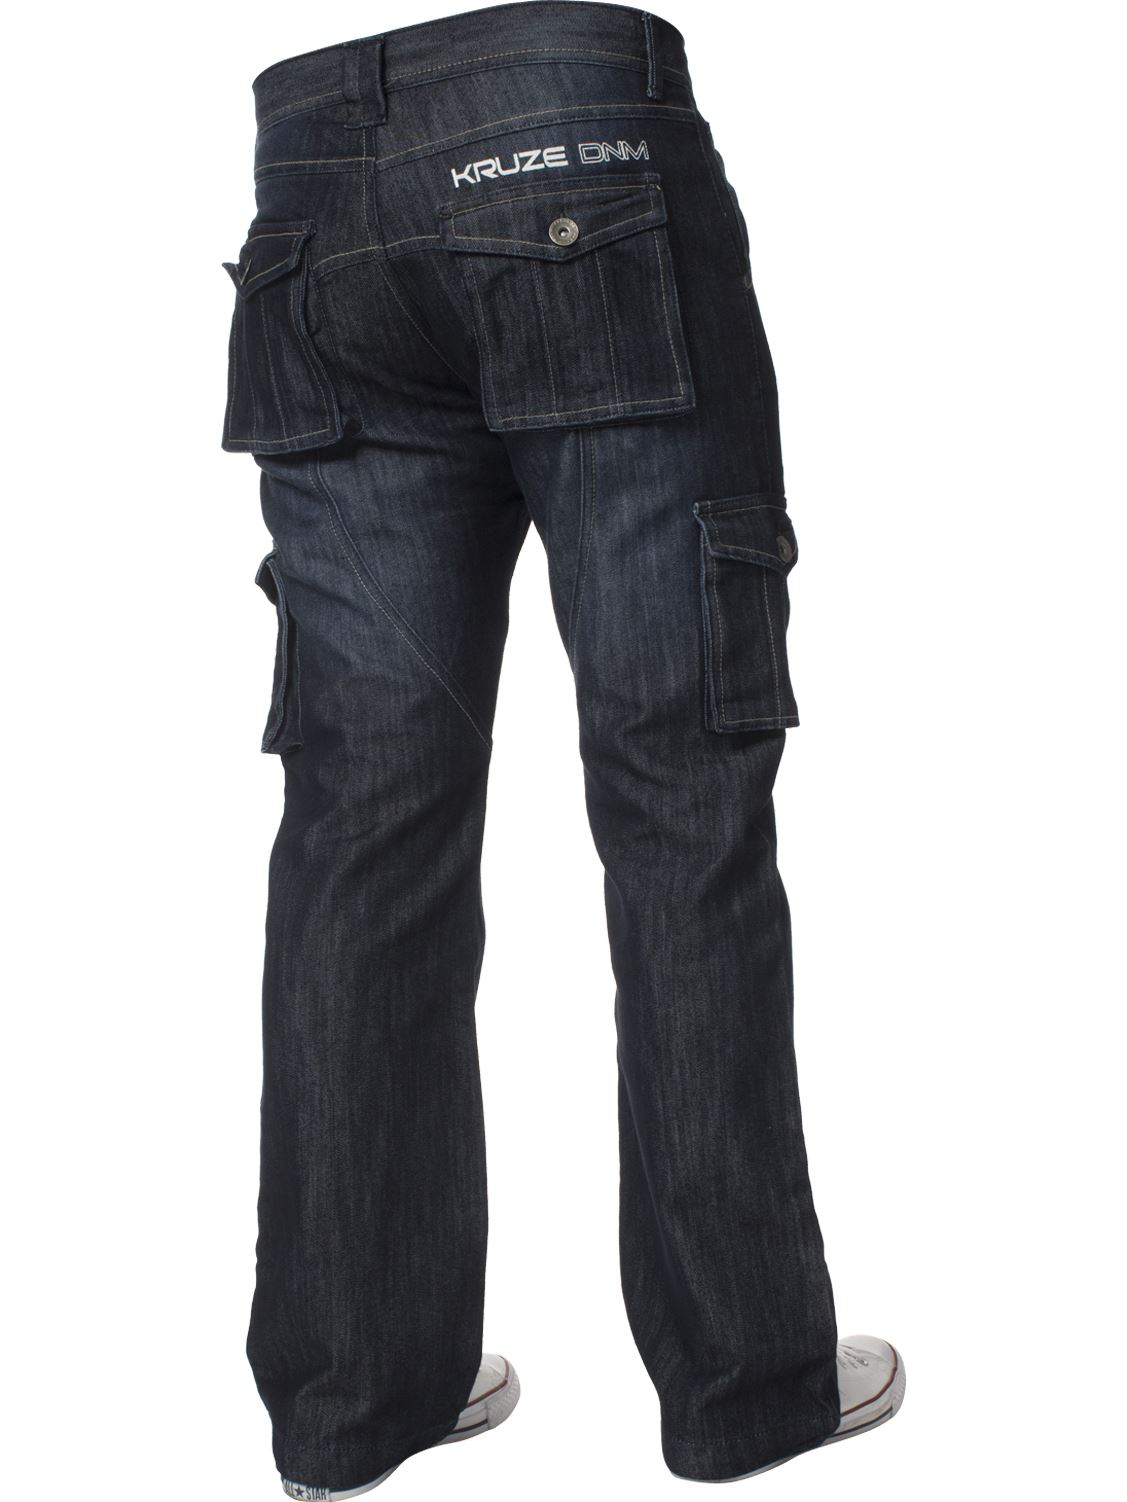 Mens-Cargo-Jeans-Combat-Trousers-Heavy-Duty-Work-Casual-Big-Tall-Denim-Pants thumbnail 73